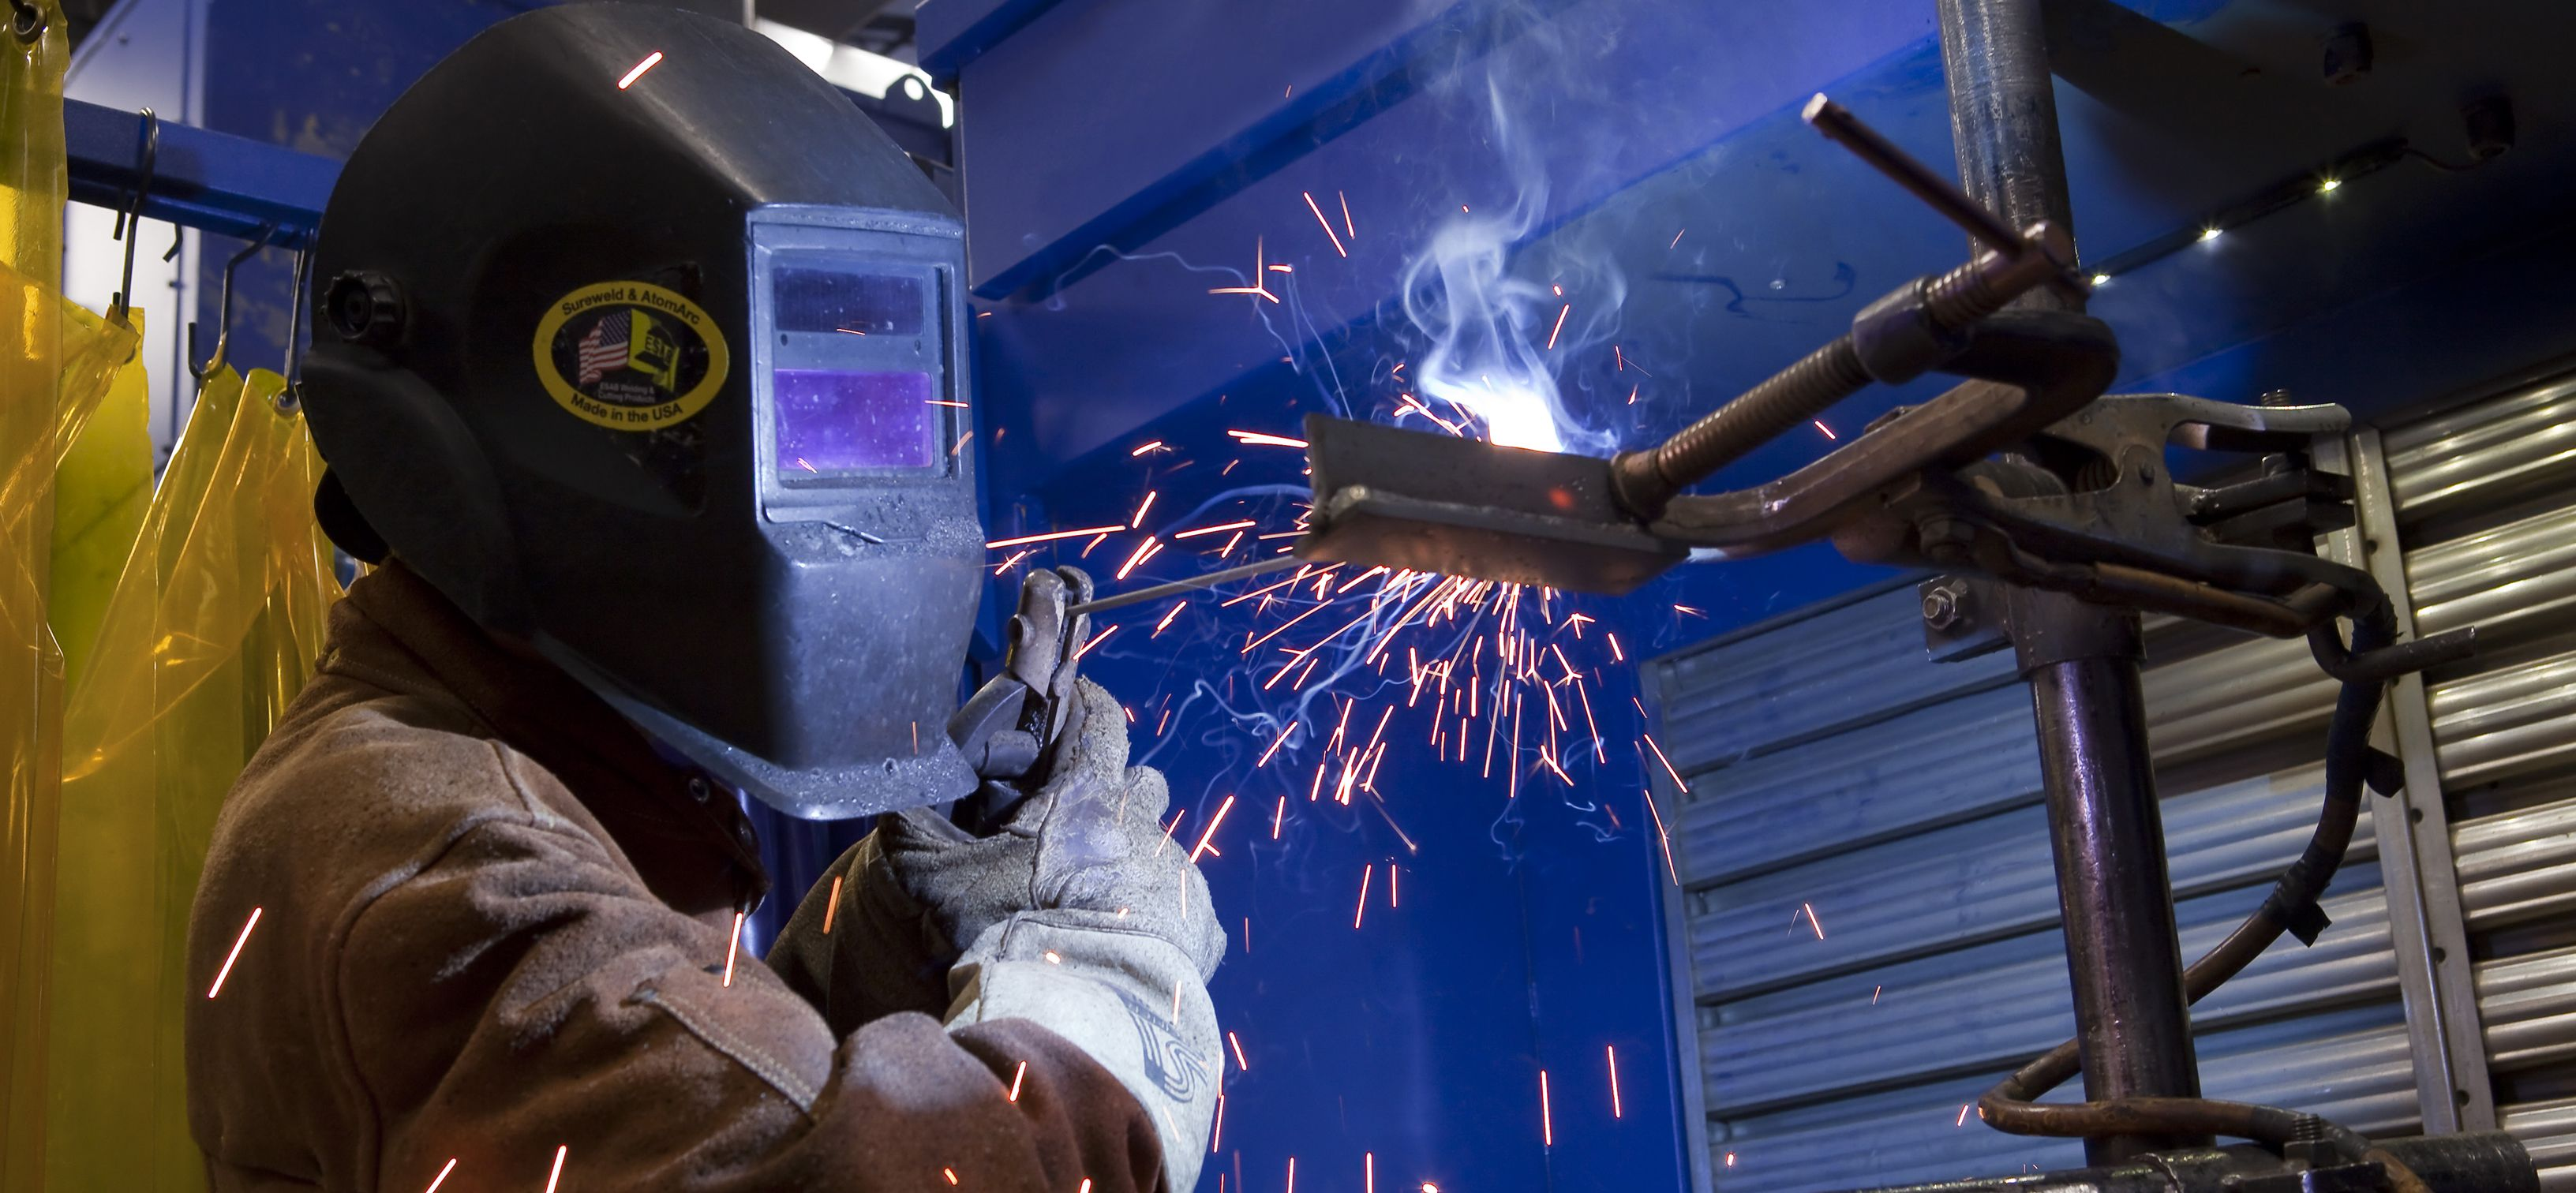 If you really have found a passion for welding and want to